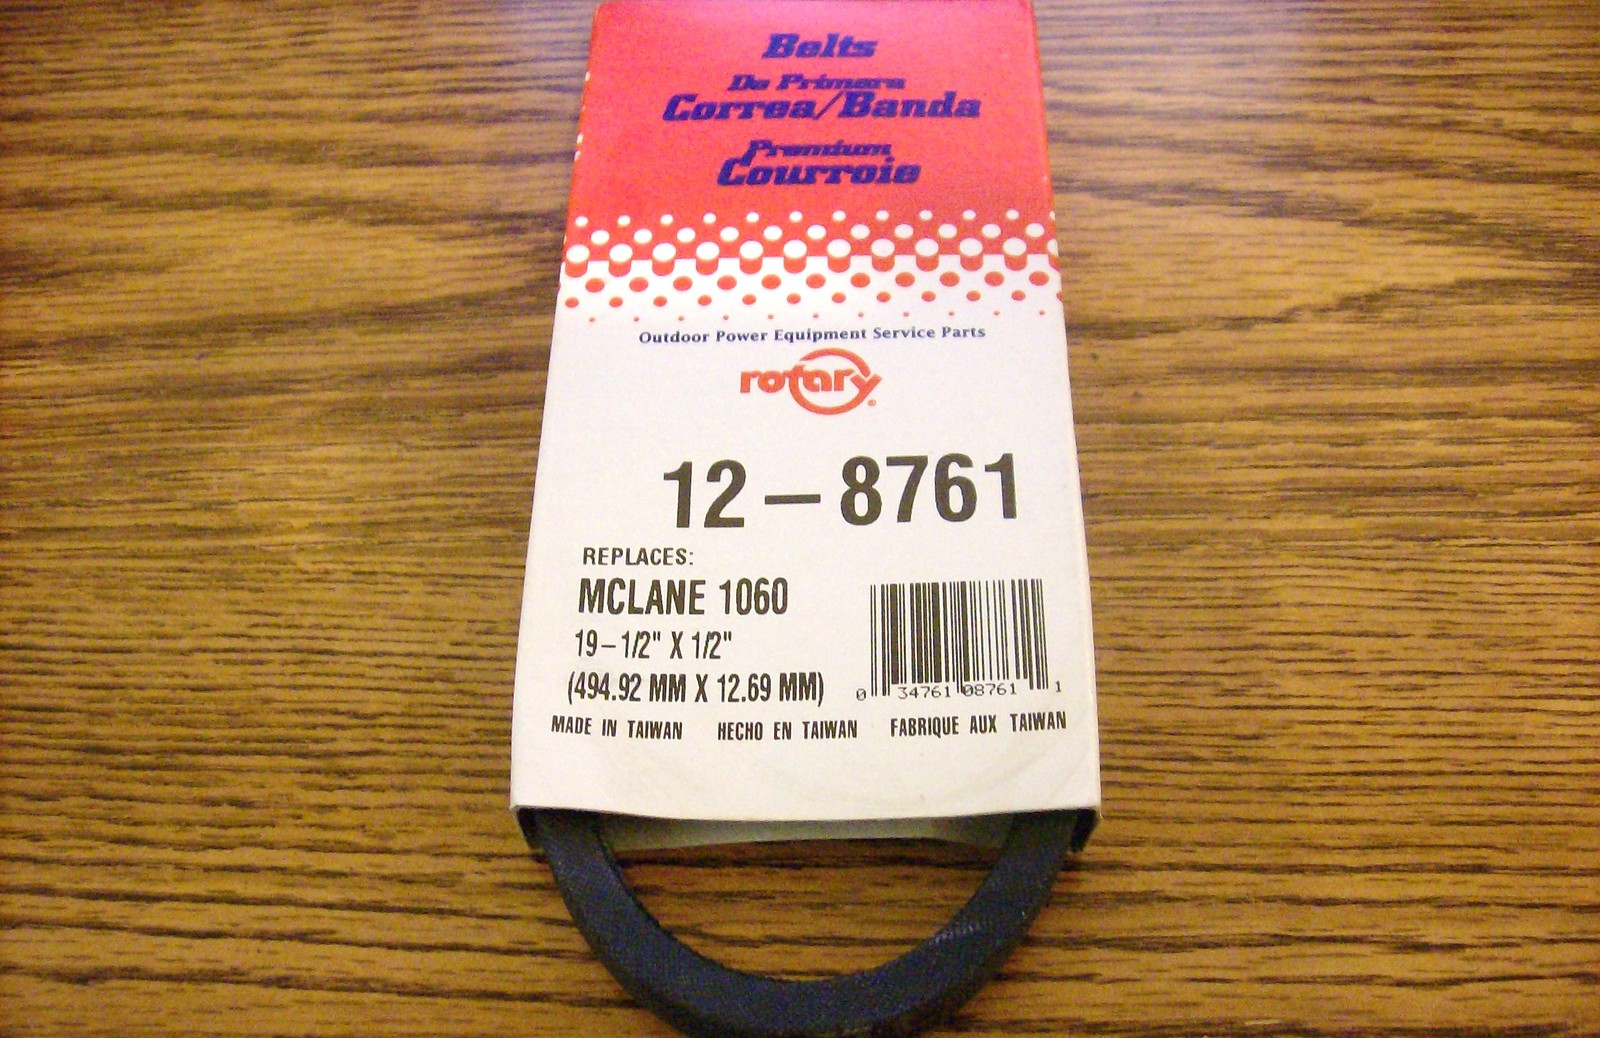 "Mclane and Craftsman 20"" cut drive belt 1060B, 1060 for front throw lawn mowers"